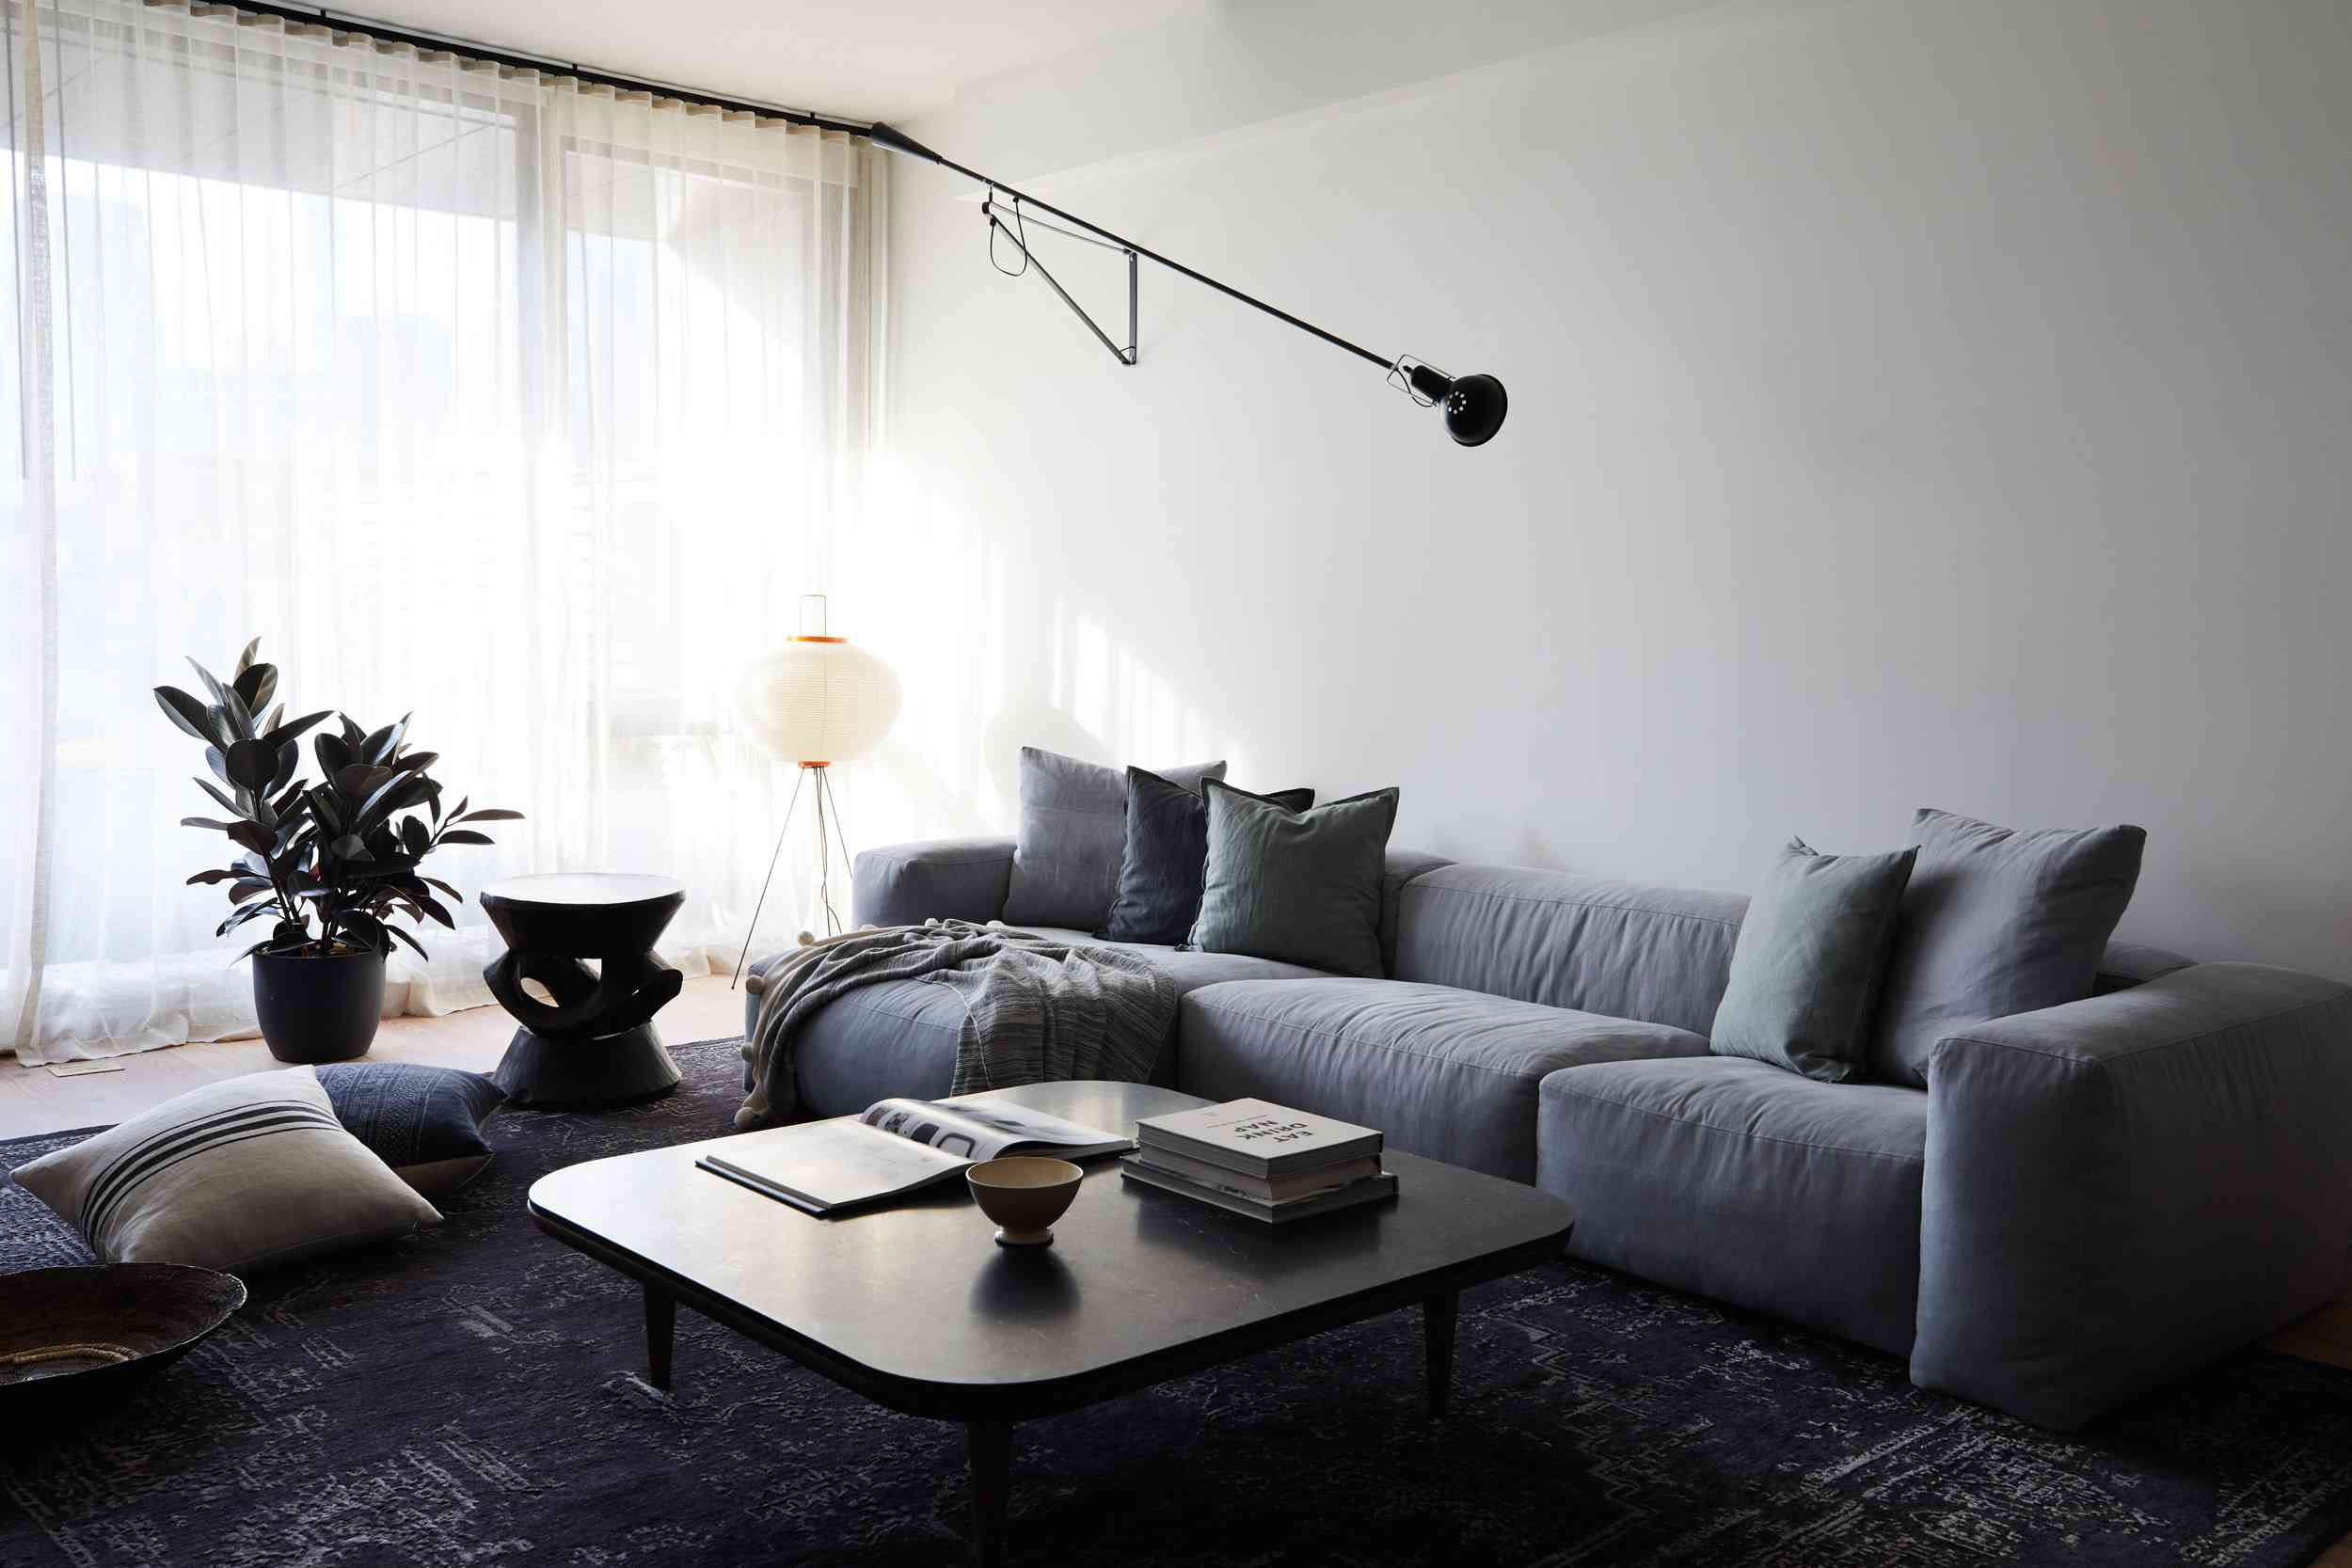 Plush modern family room with curved lines